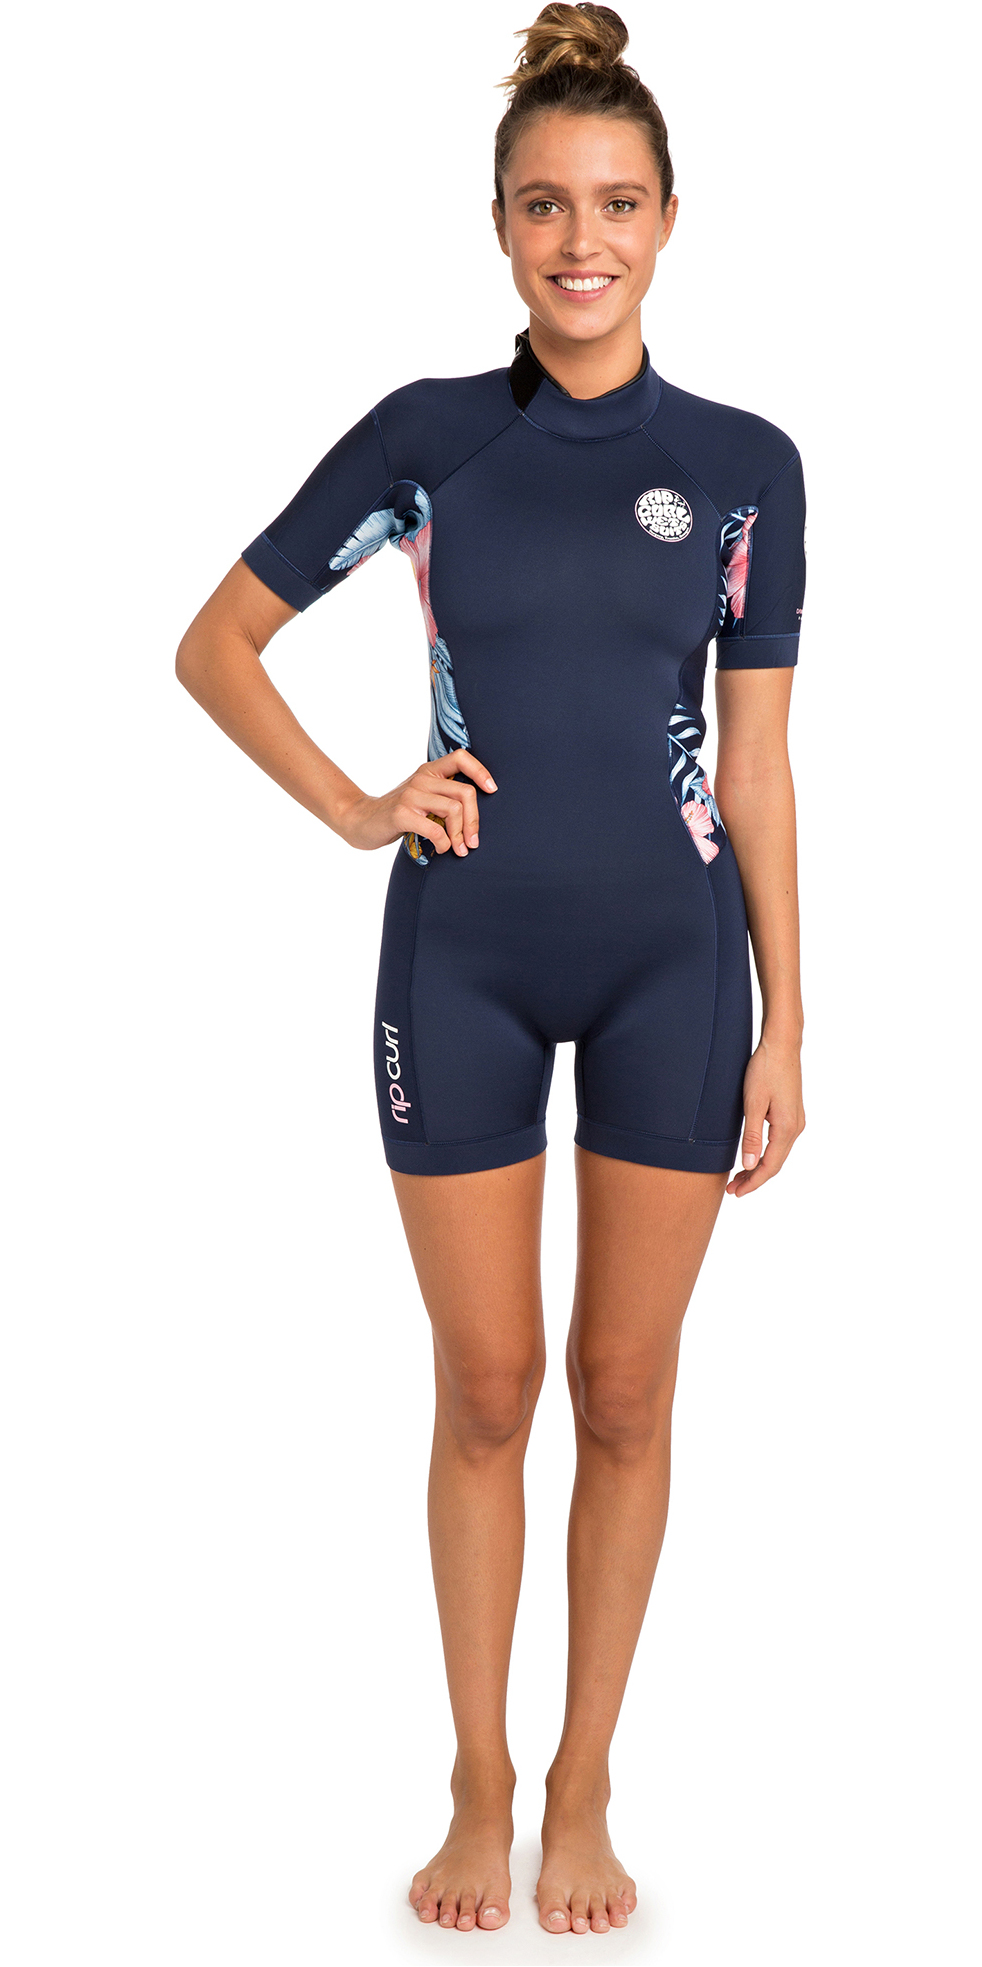 37f3dd4591 2019 Rip Curl Womens Dawn Patrol 2mm Back Zip Shorty Wetsuit Navy Wsp8fw -  Wsp8fw - Womens - Shorty